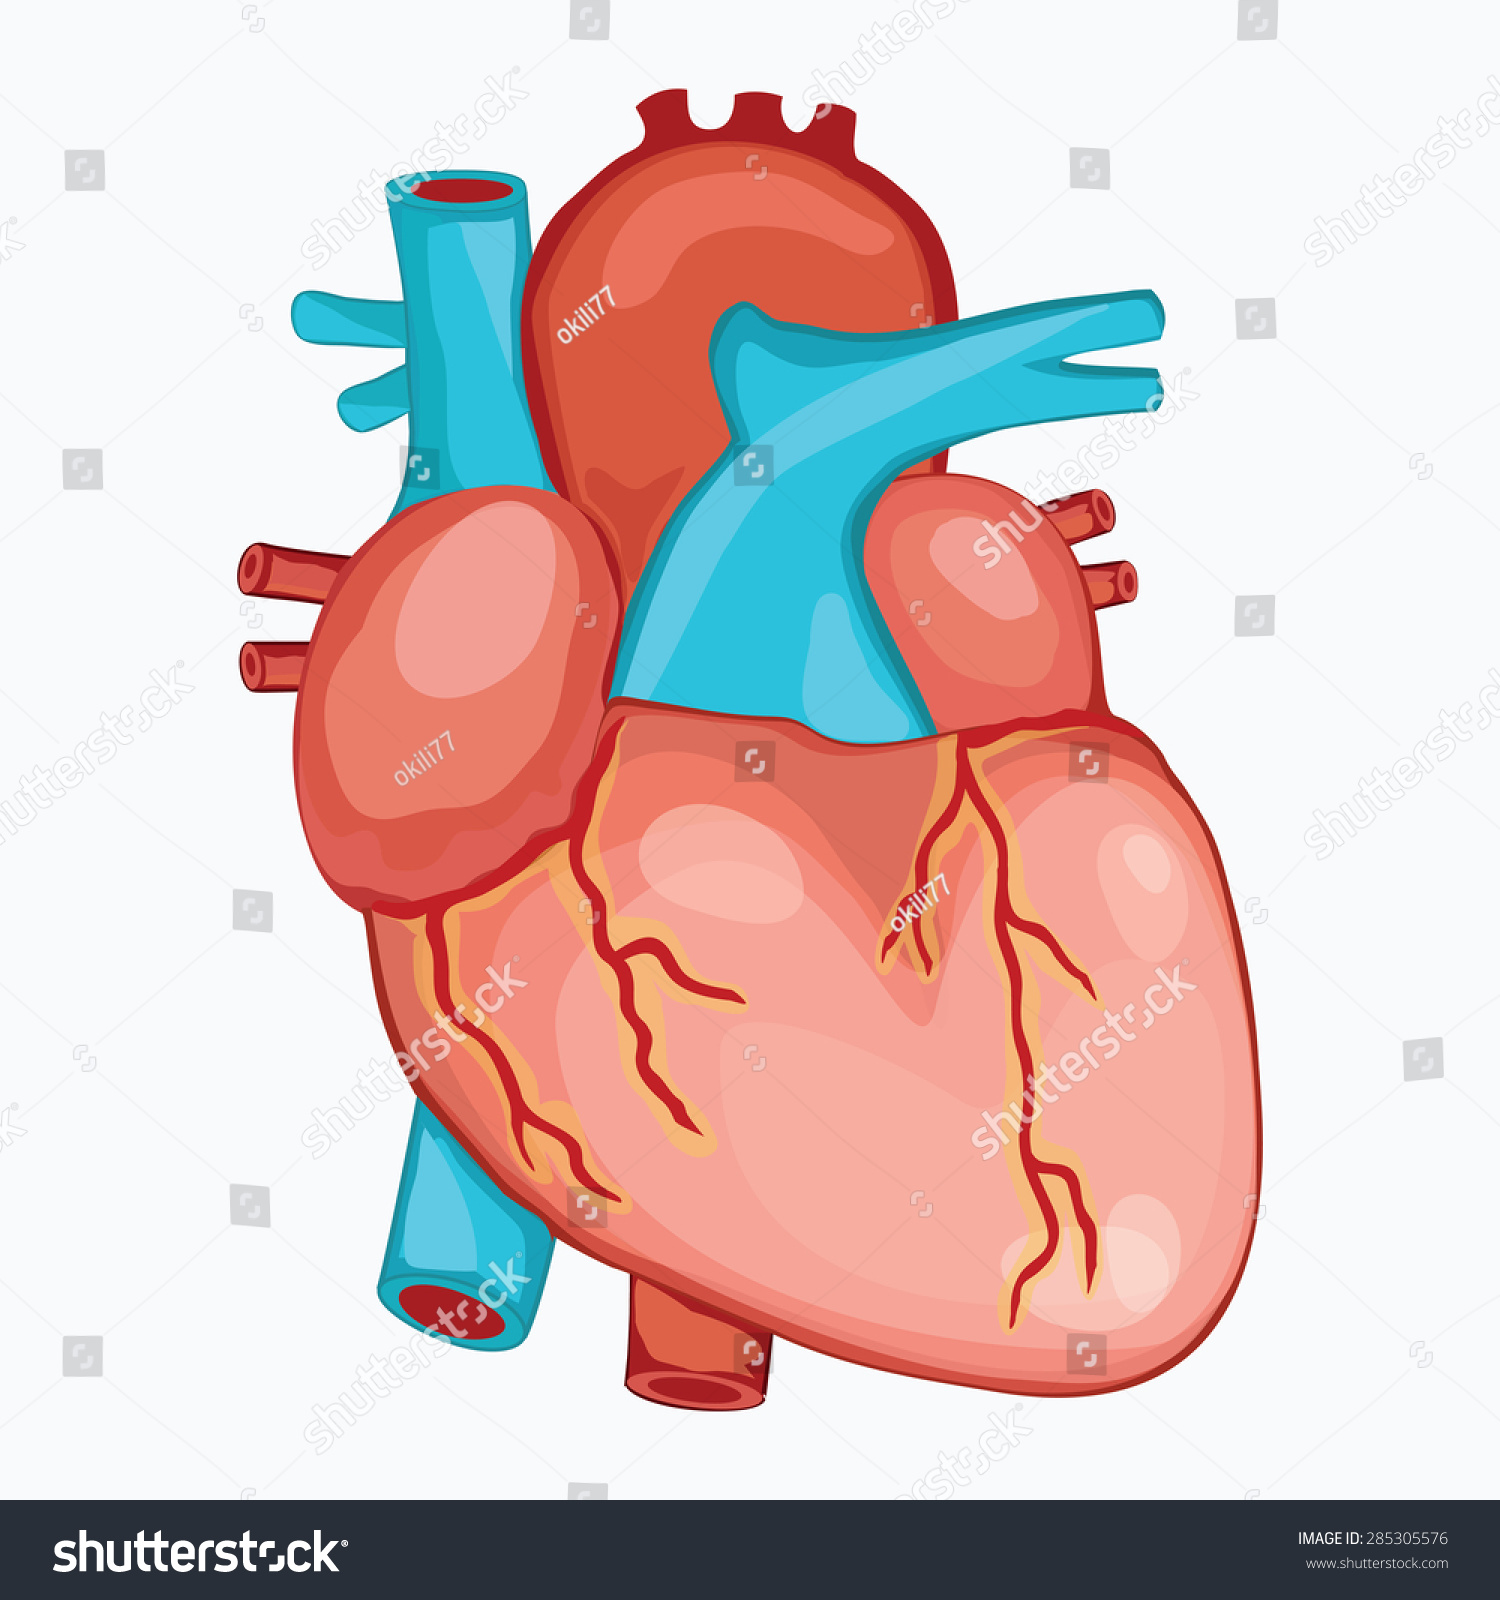 HUMAN HEART ANATOMY Illustration Vector Stock Vector (Royalty Free ...